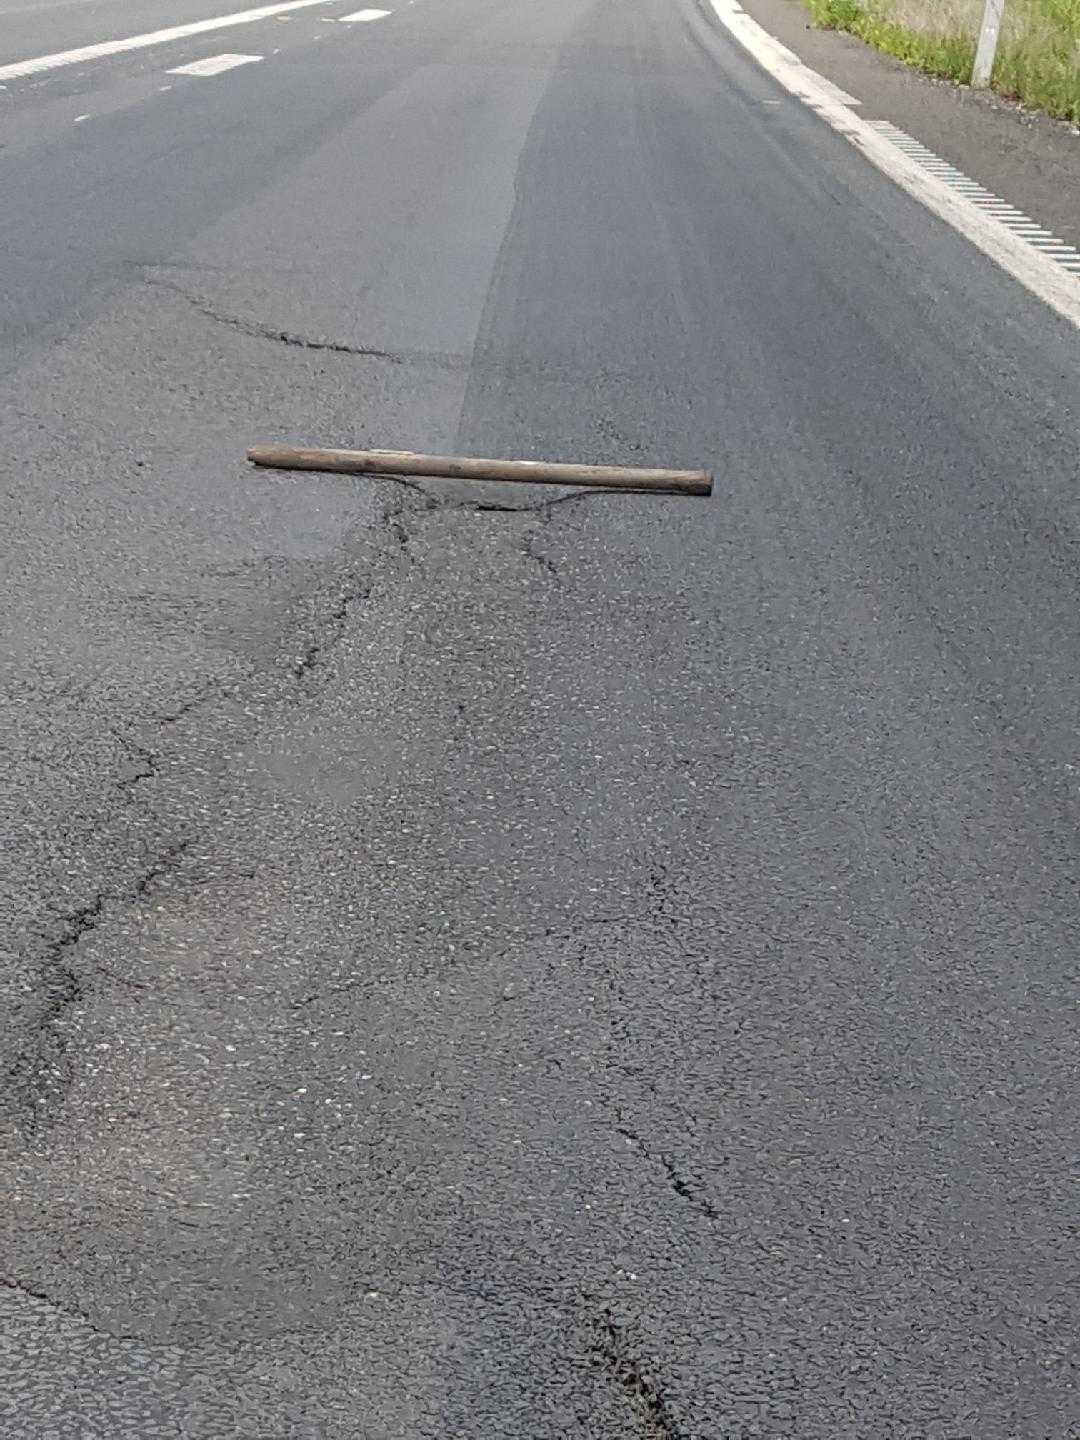 ROAD DEFECT: The defect in the road was identified by the TMR inspector yesterday.